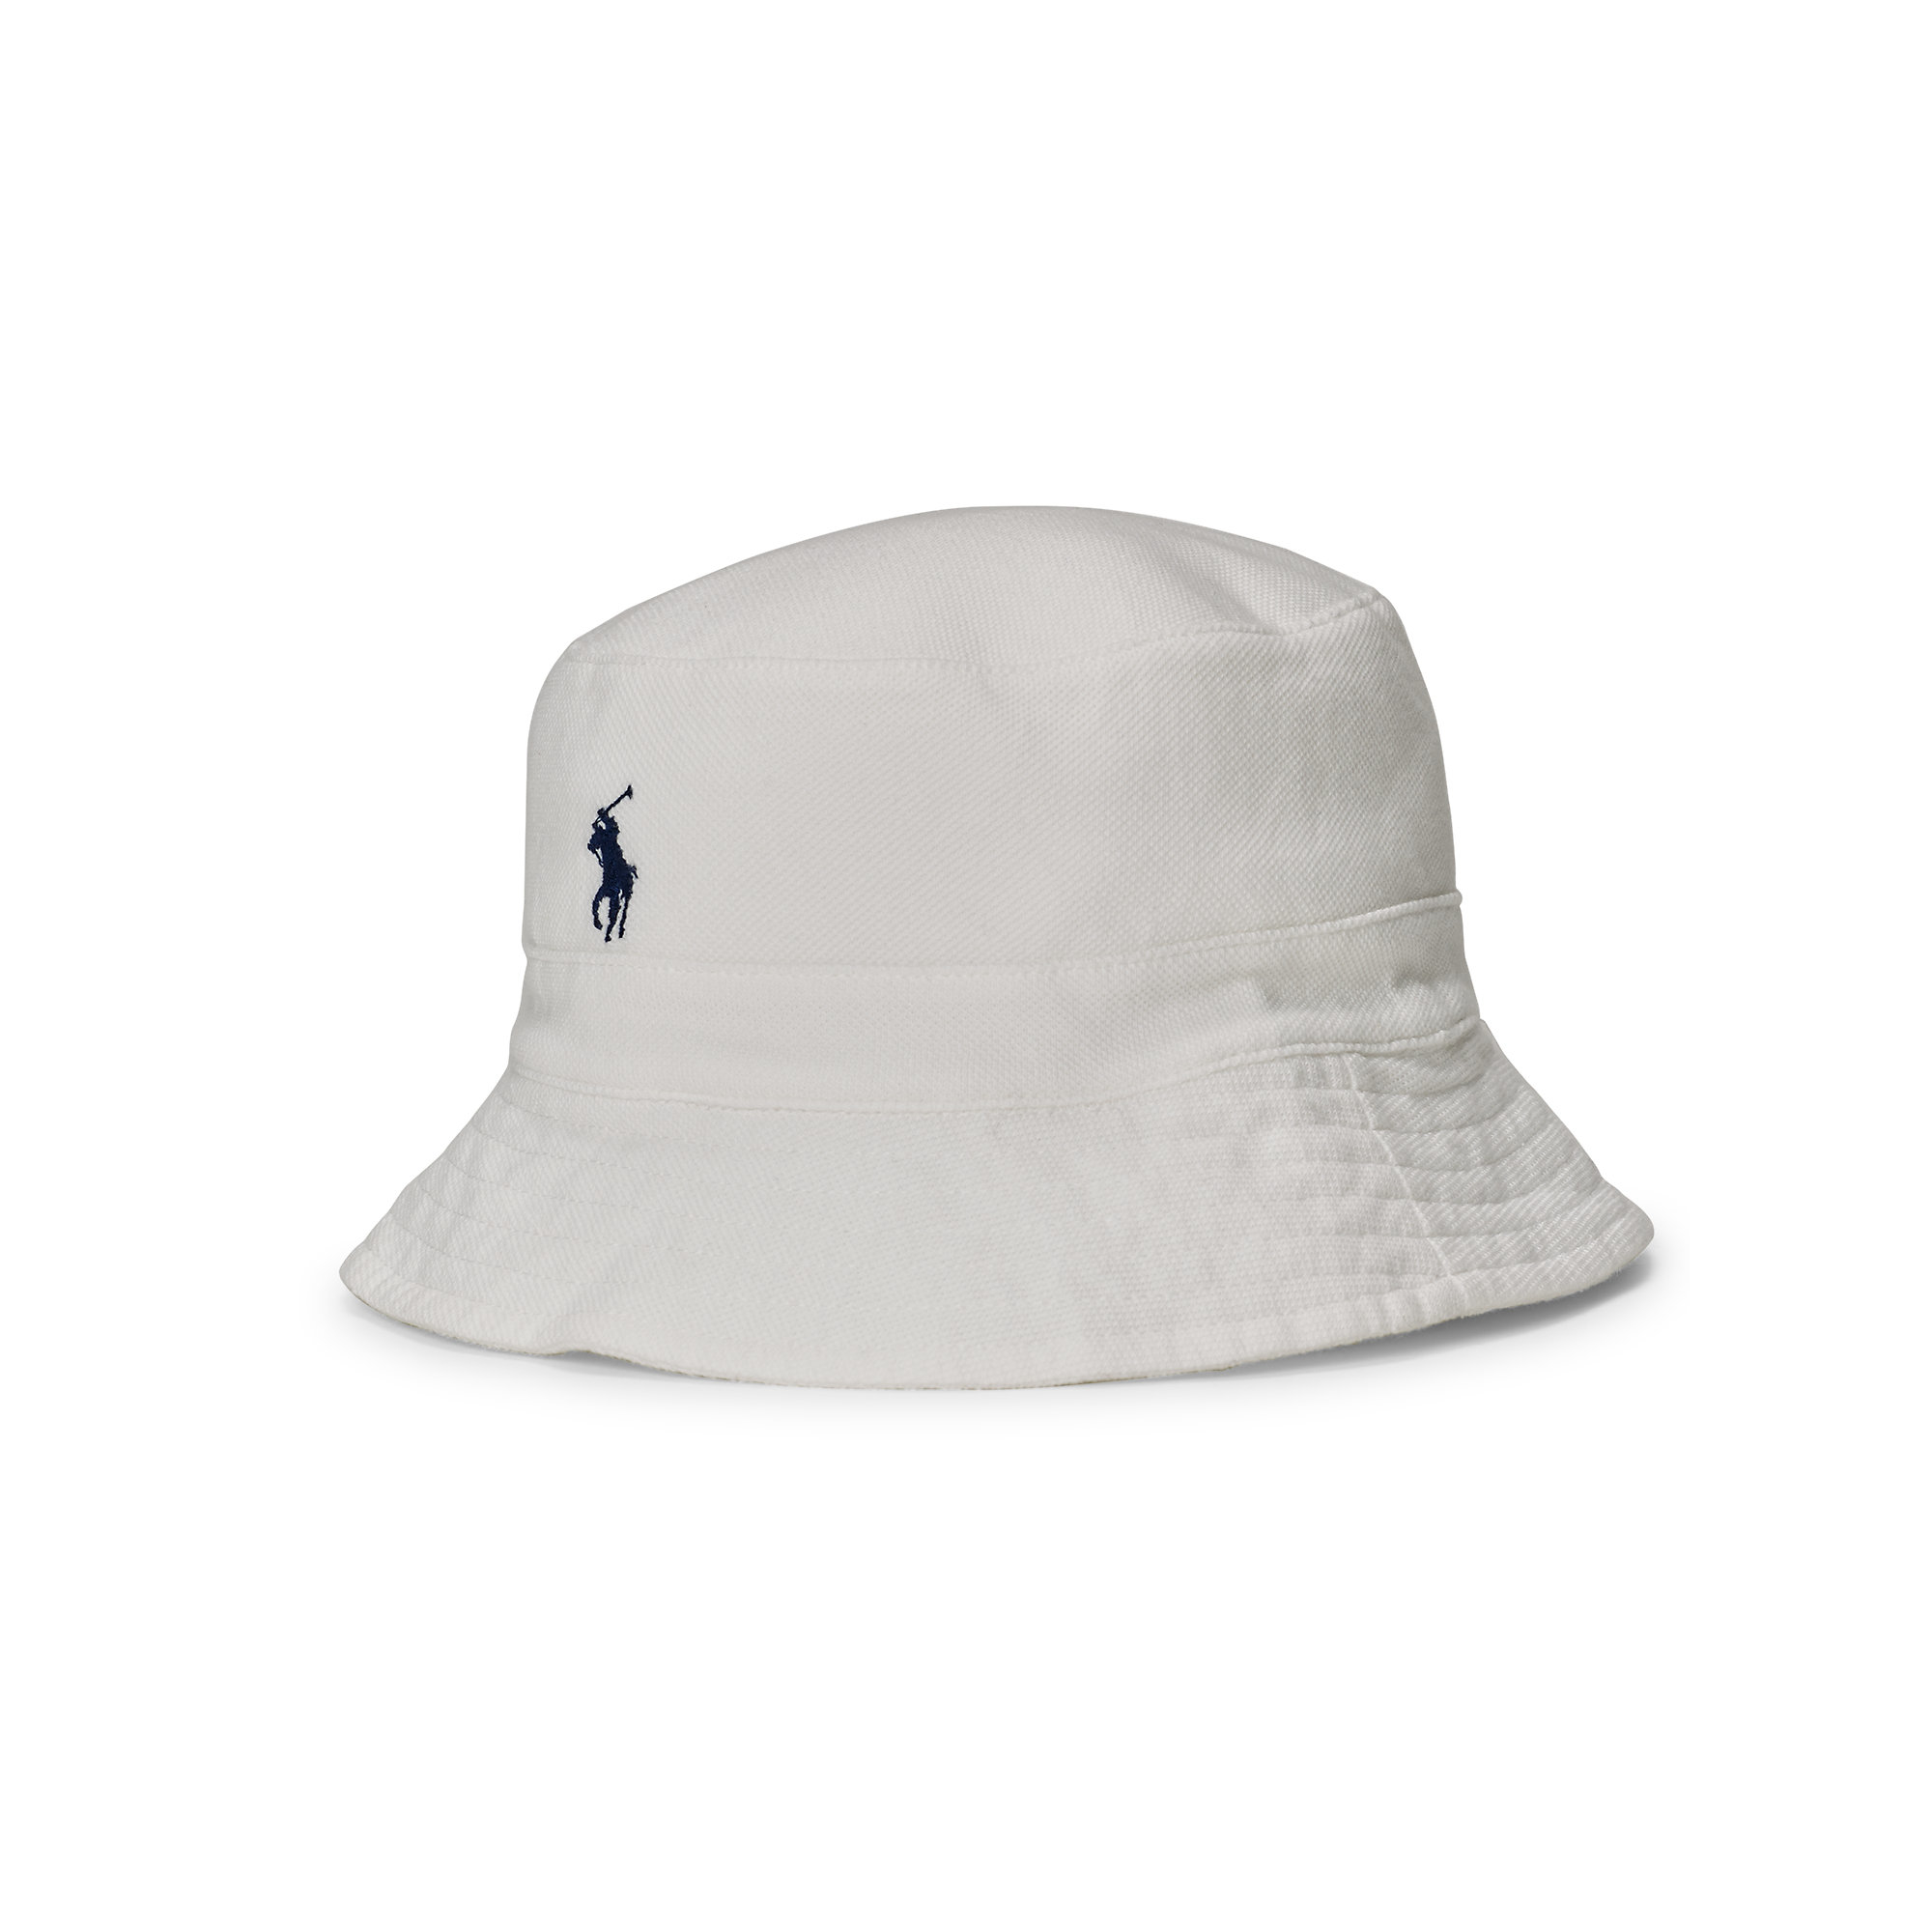 Lyst - Polo Ralph Lauren Cotton Mesh Bucket Hat in White for Men 8eafc49804b